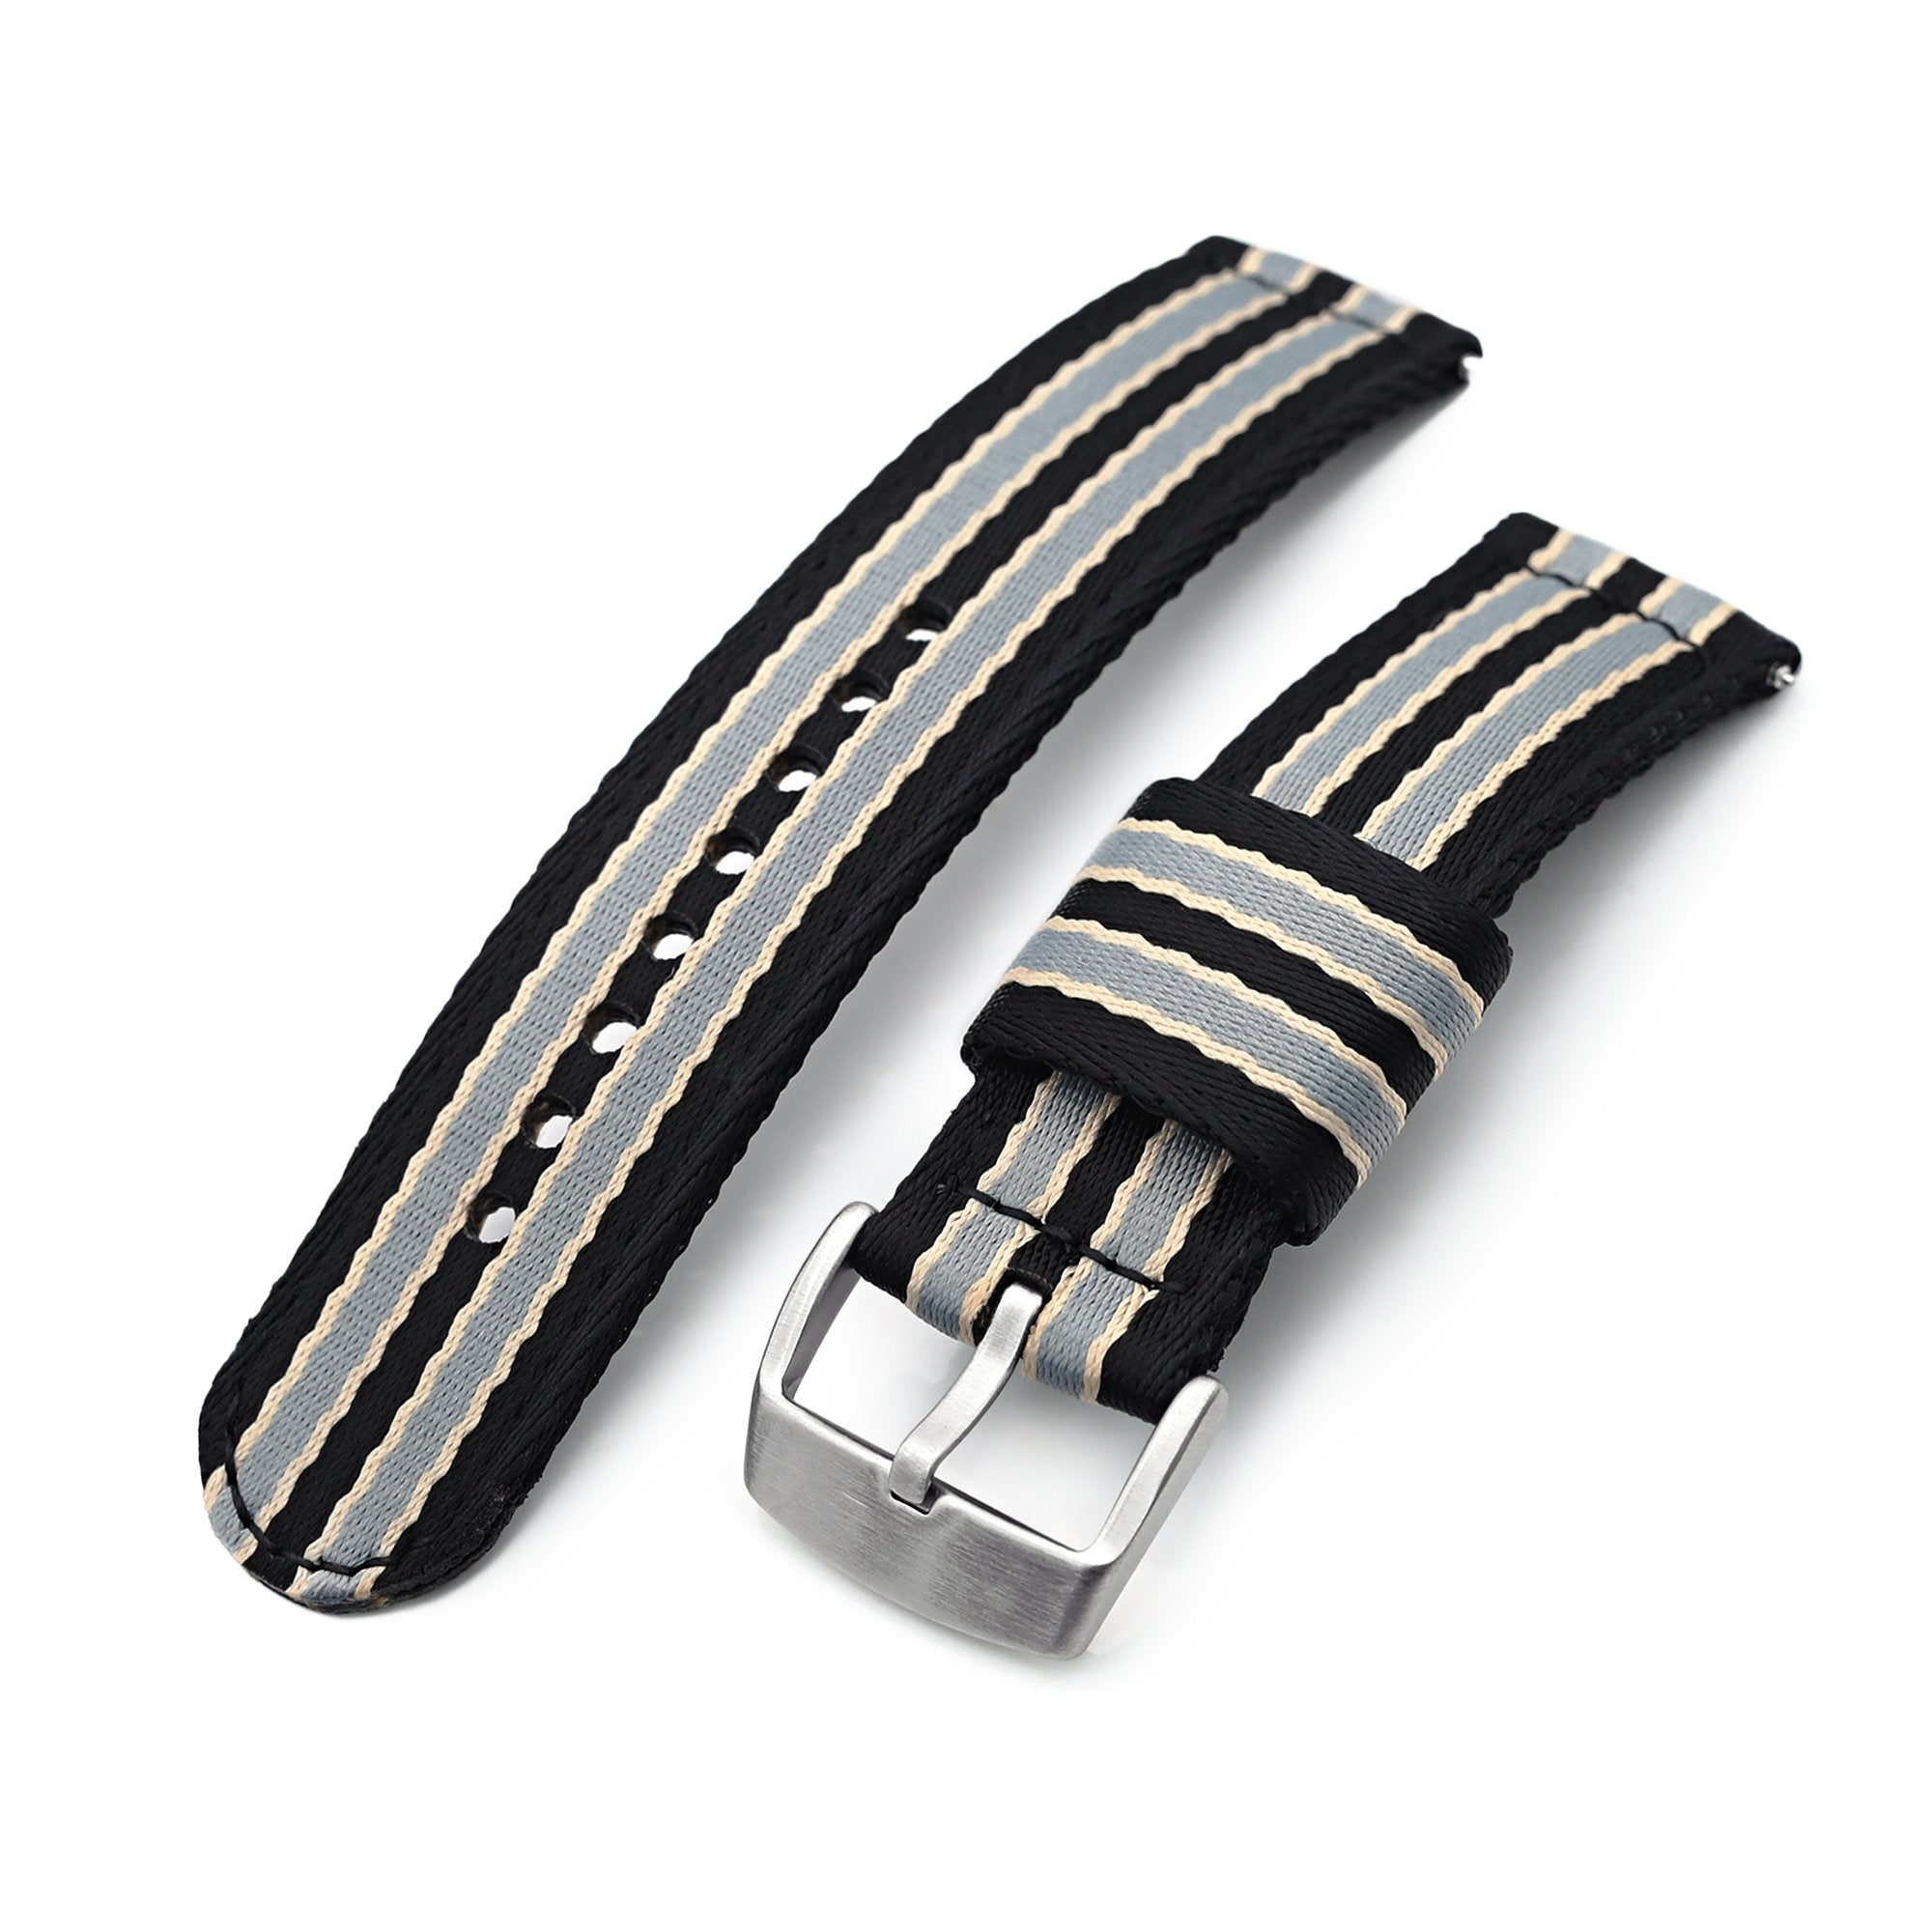 22mm 2-pcs Seatbelt Nylon Watch Band, Black, Grey and Khaki Stripes, Brushed Buckle Strapcode Watch Bands